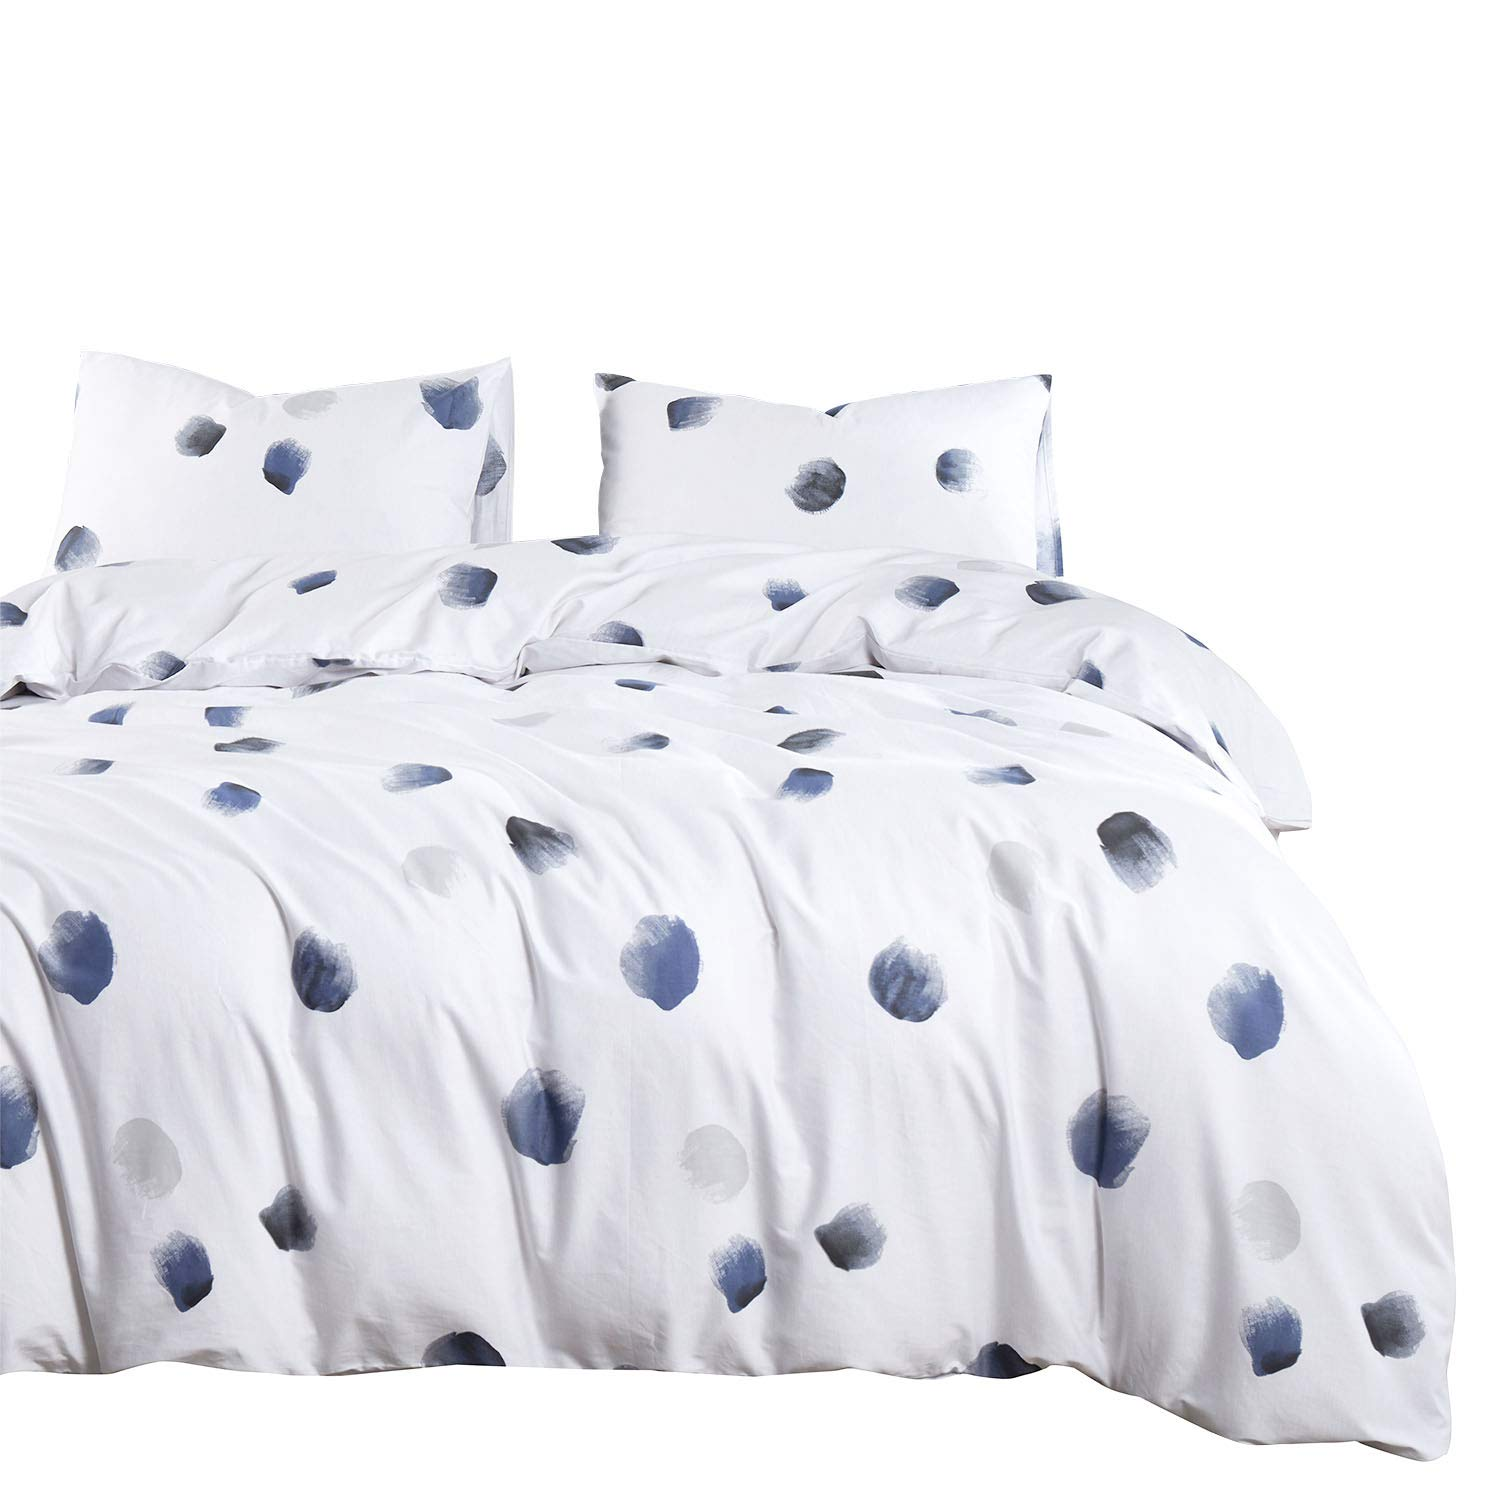 Wake In Cloud Navy Blue And White Duvet Cover Set 100 Cotton